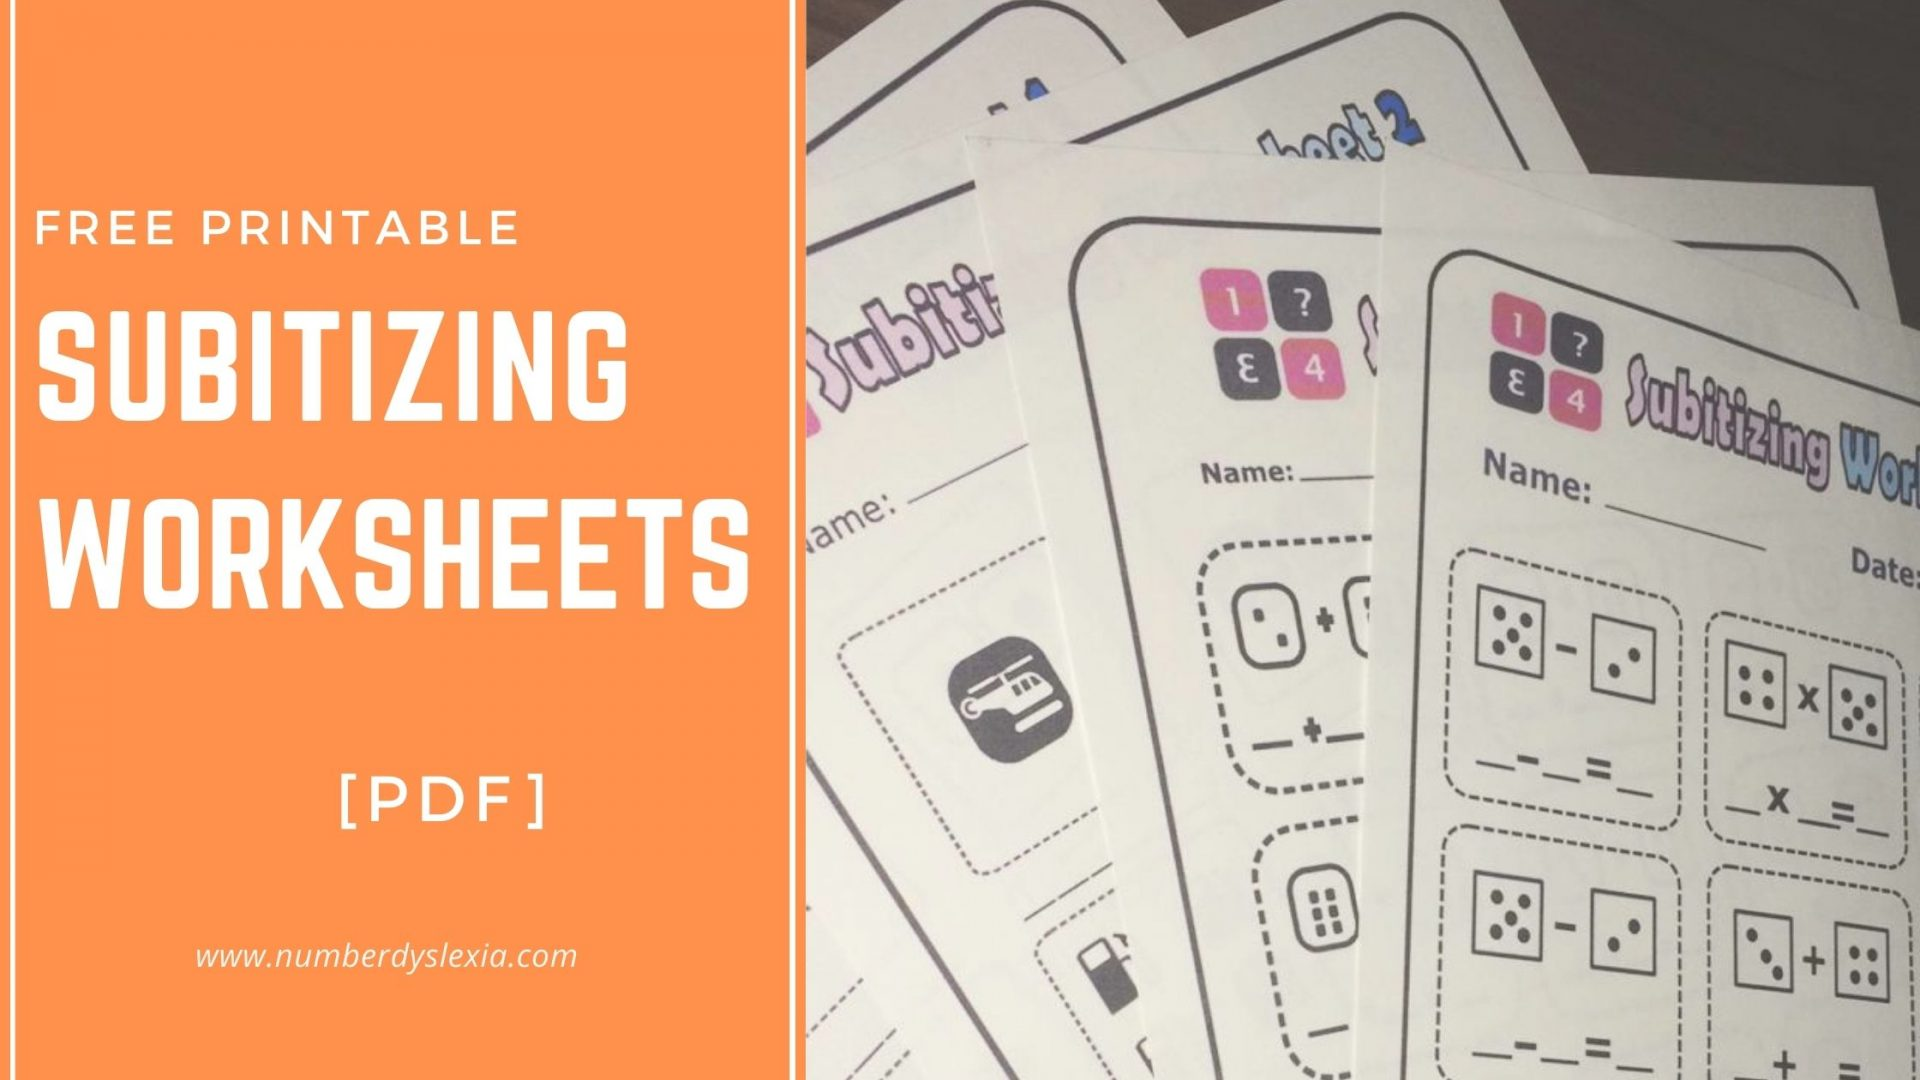 Free Printable Subitizing Worksheets PDF